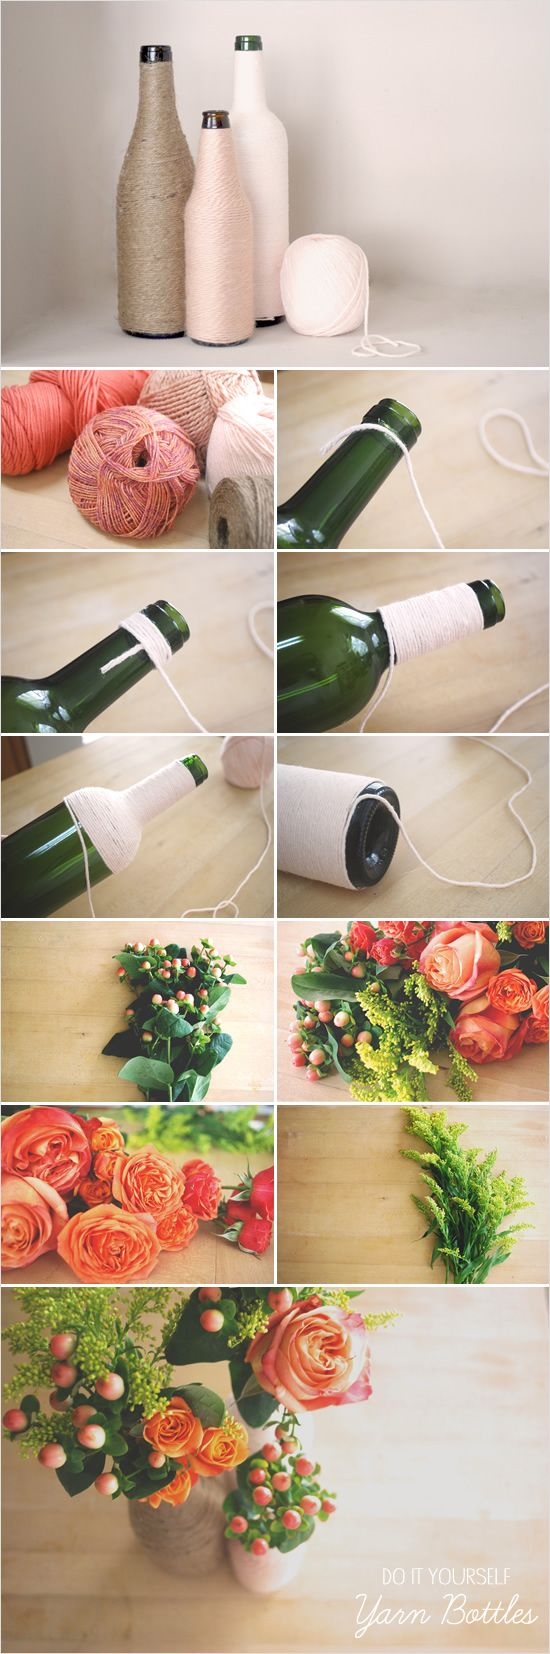 this is going to be so perfect and cheap. we already have so many wine bottles bc we just cant bring ourselves to throw out the pretty bottles so this way we can put them to good use!!